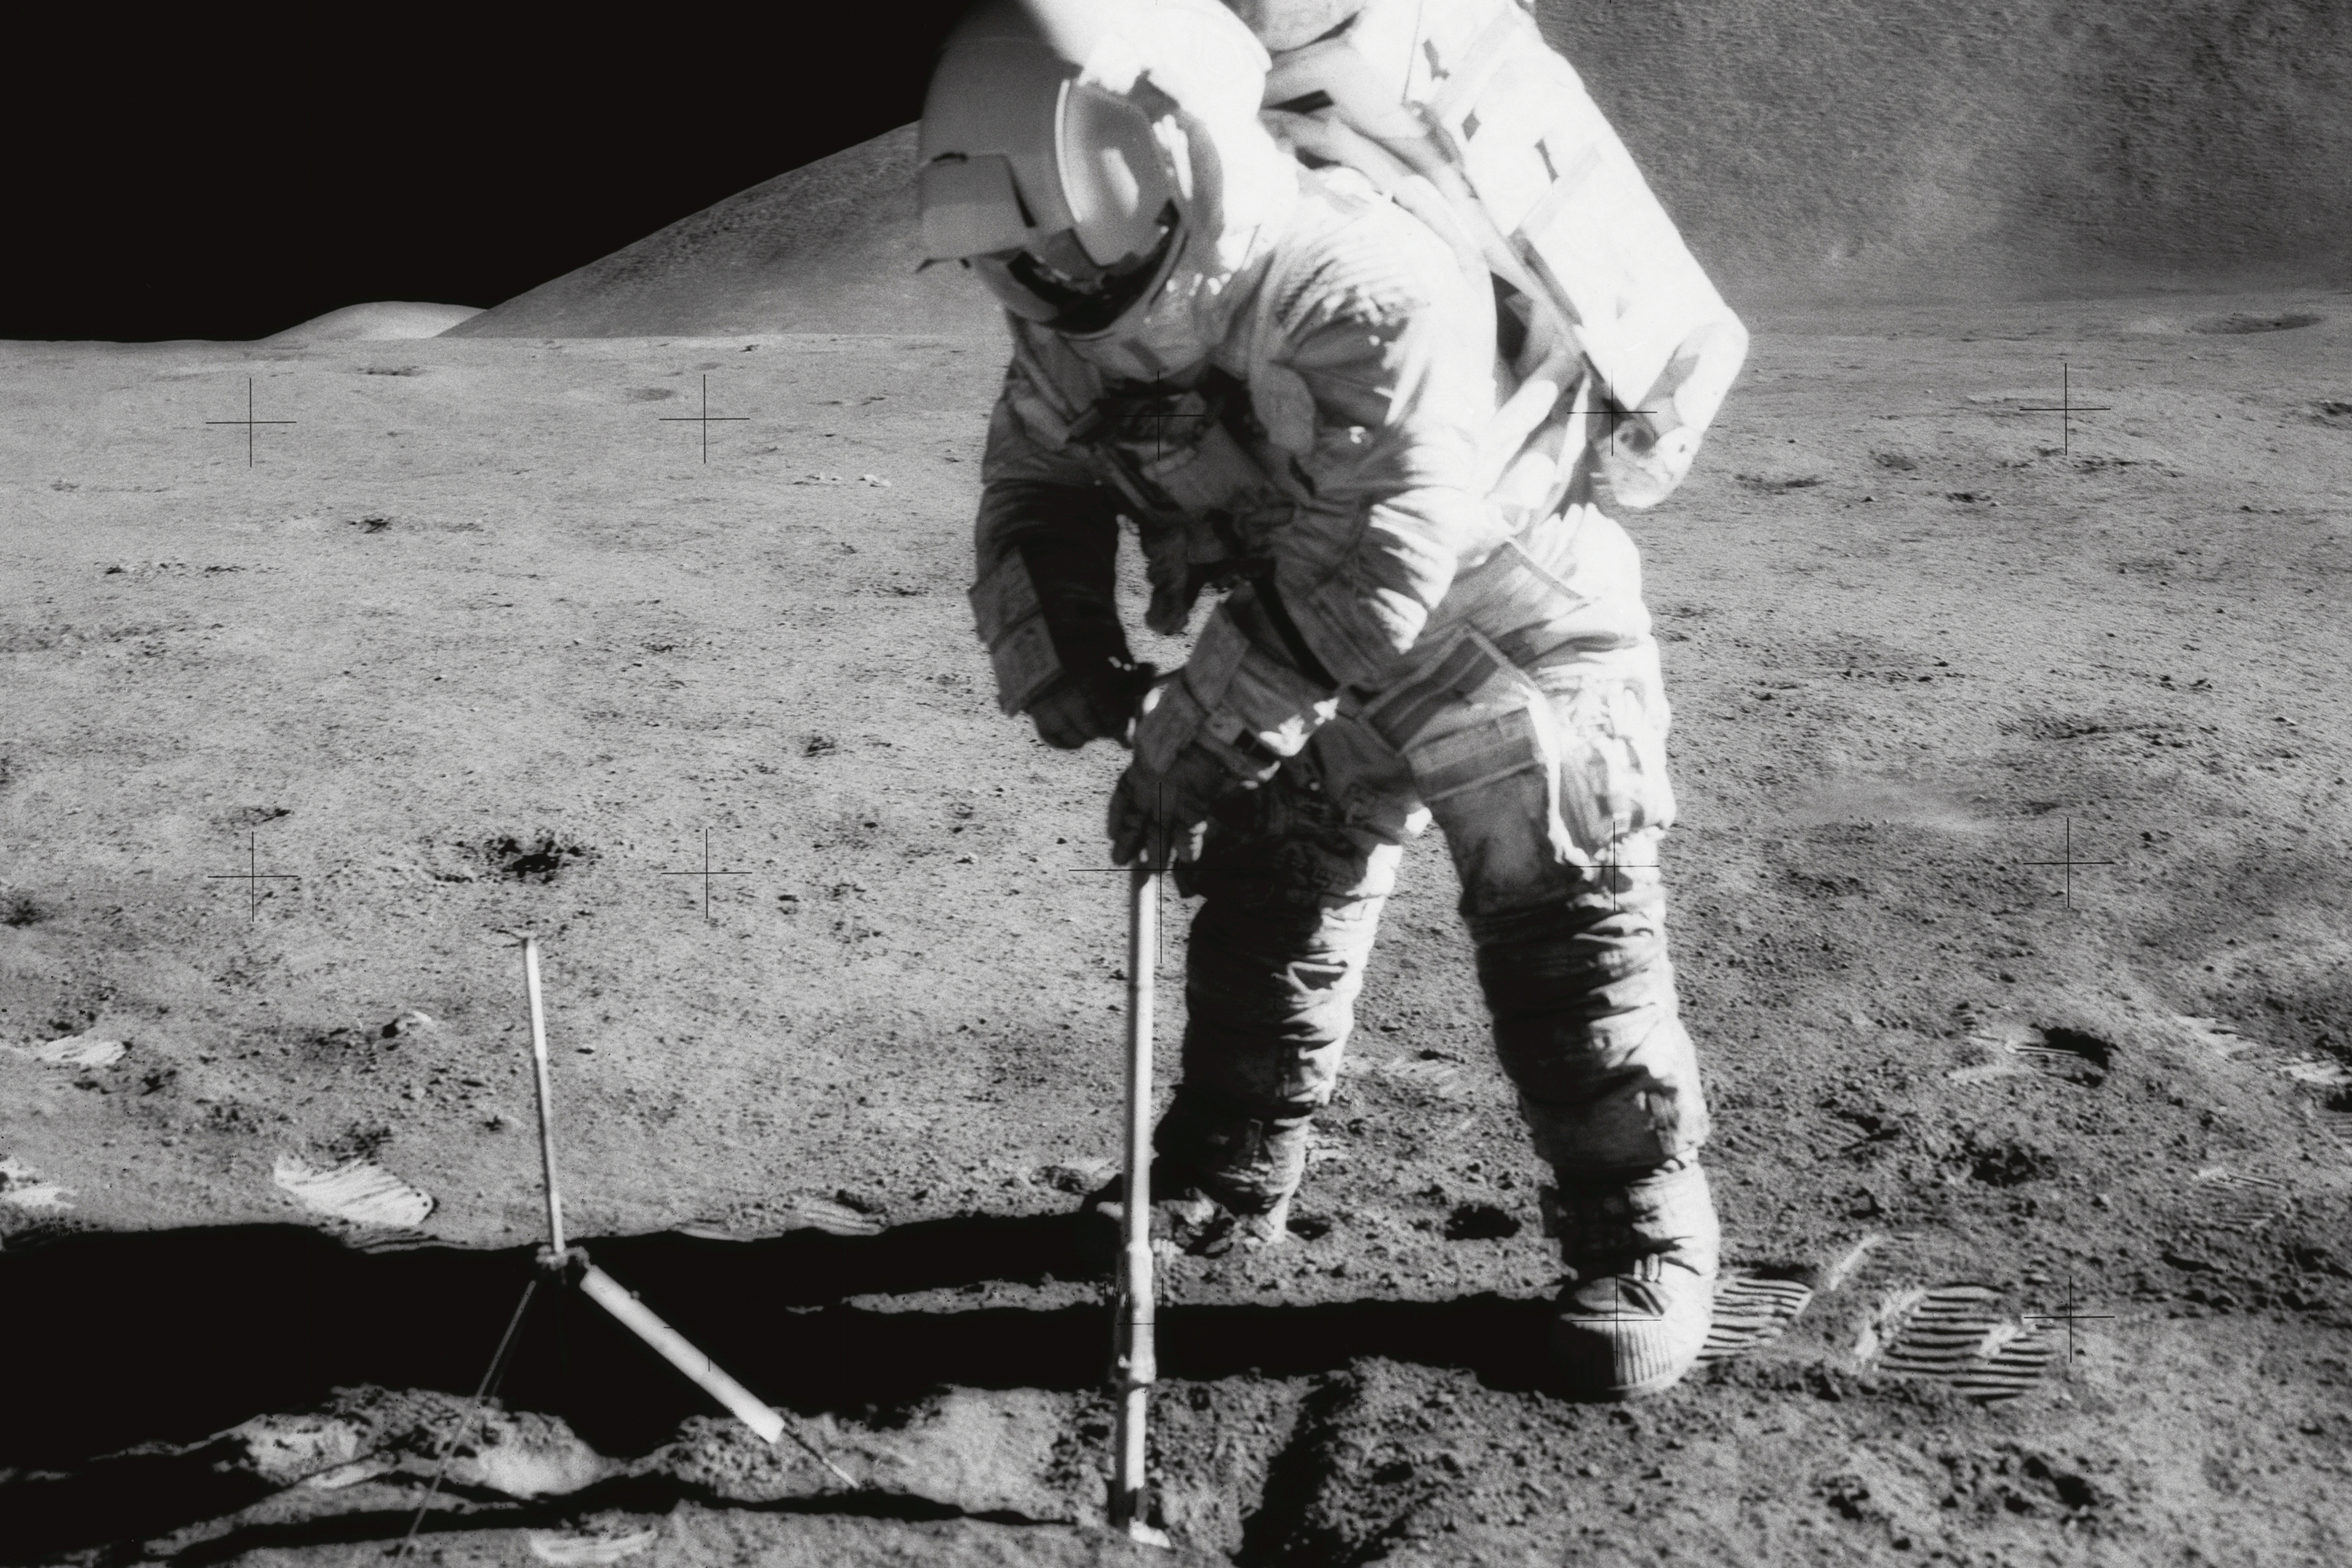 Astronaut James B. Irwin collects soil from the surface of the moon during the Apollo 15 mission